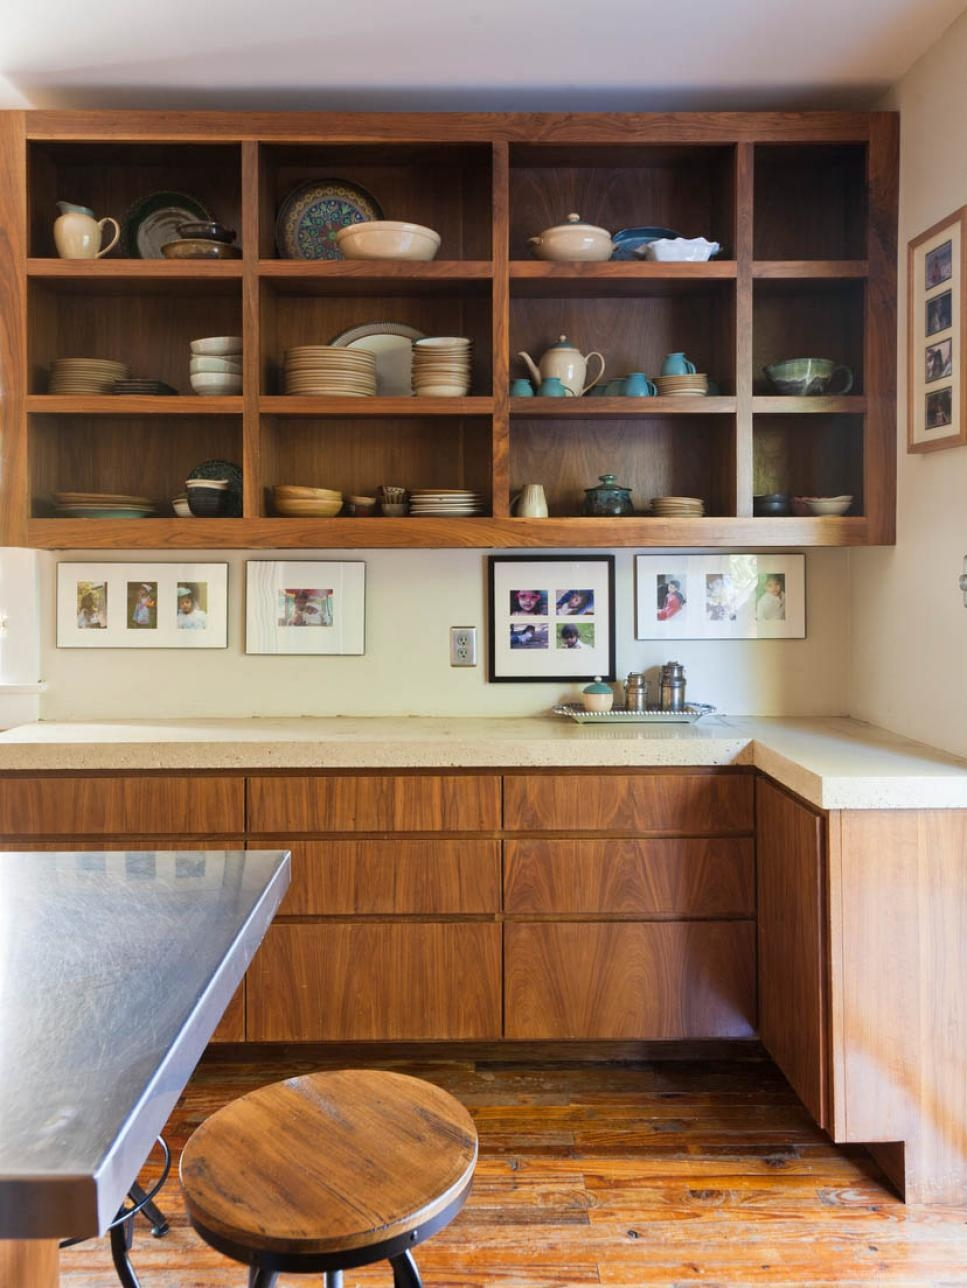 Tips For Open Shelving In The Kitchen Hgtv In Storage Racks For Kitchen Cupboards (View 16 of 25)